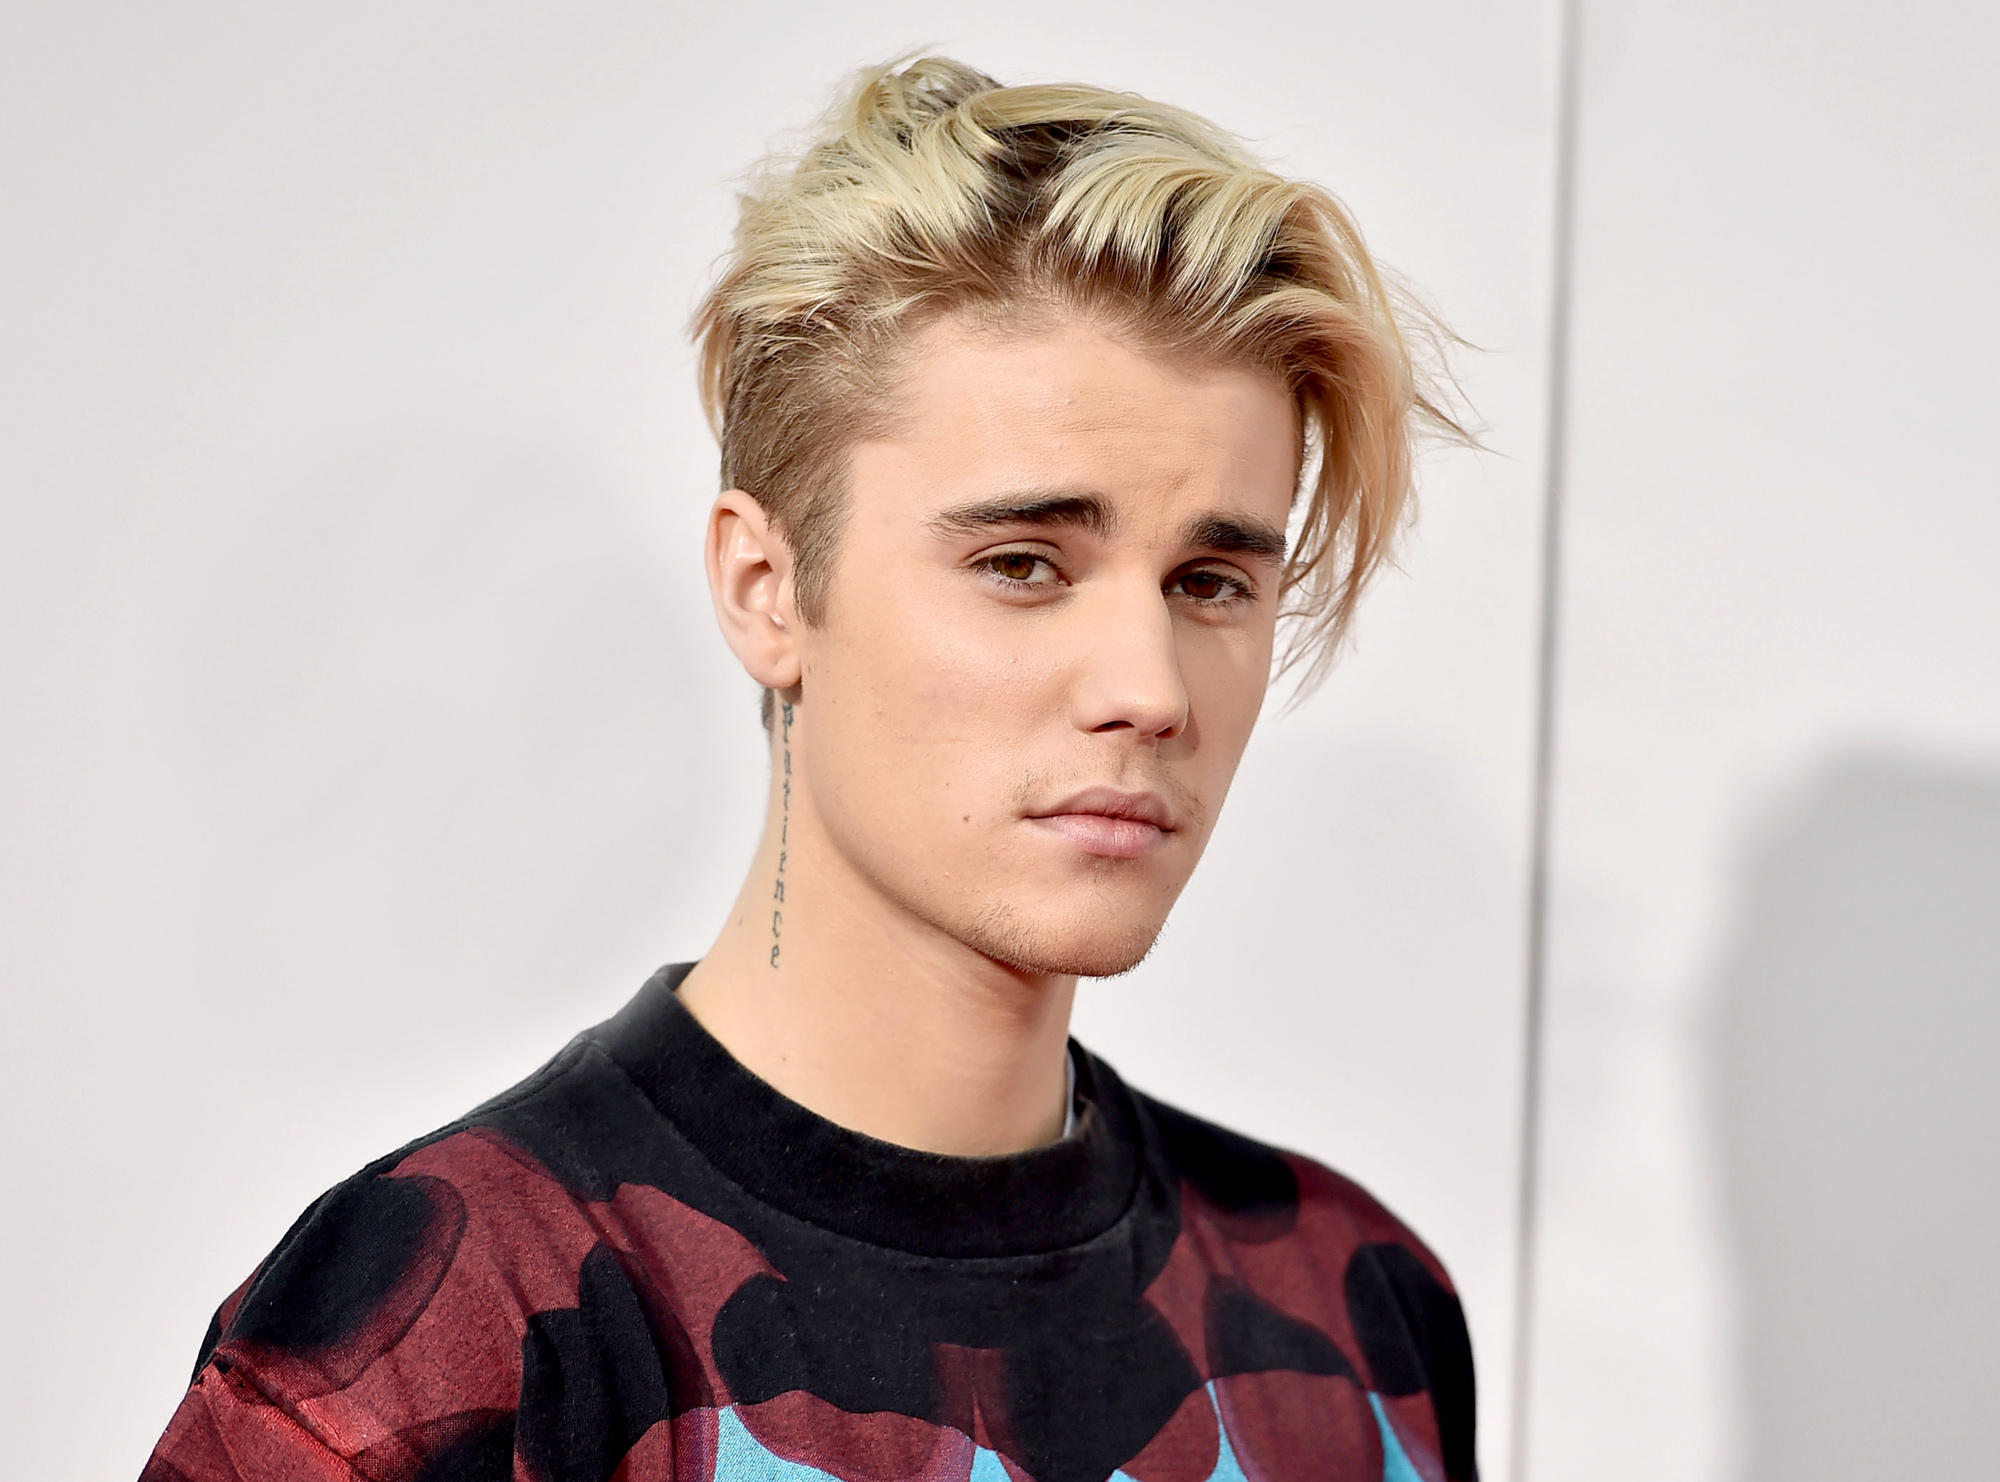 A Justin Bieber Museum Exhibition is Opening Next Month